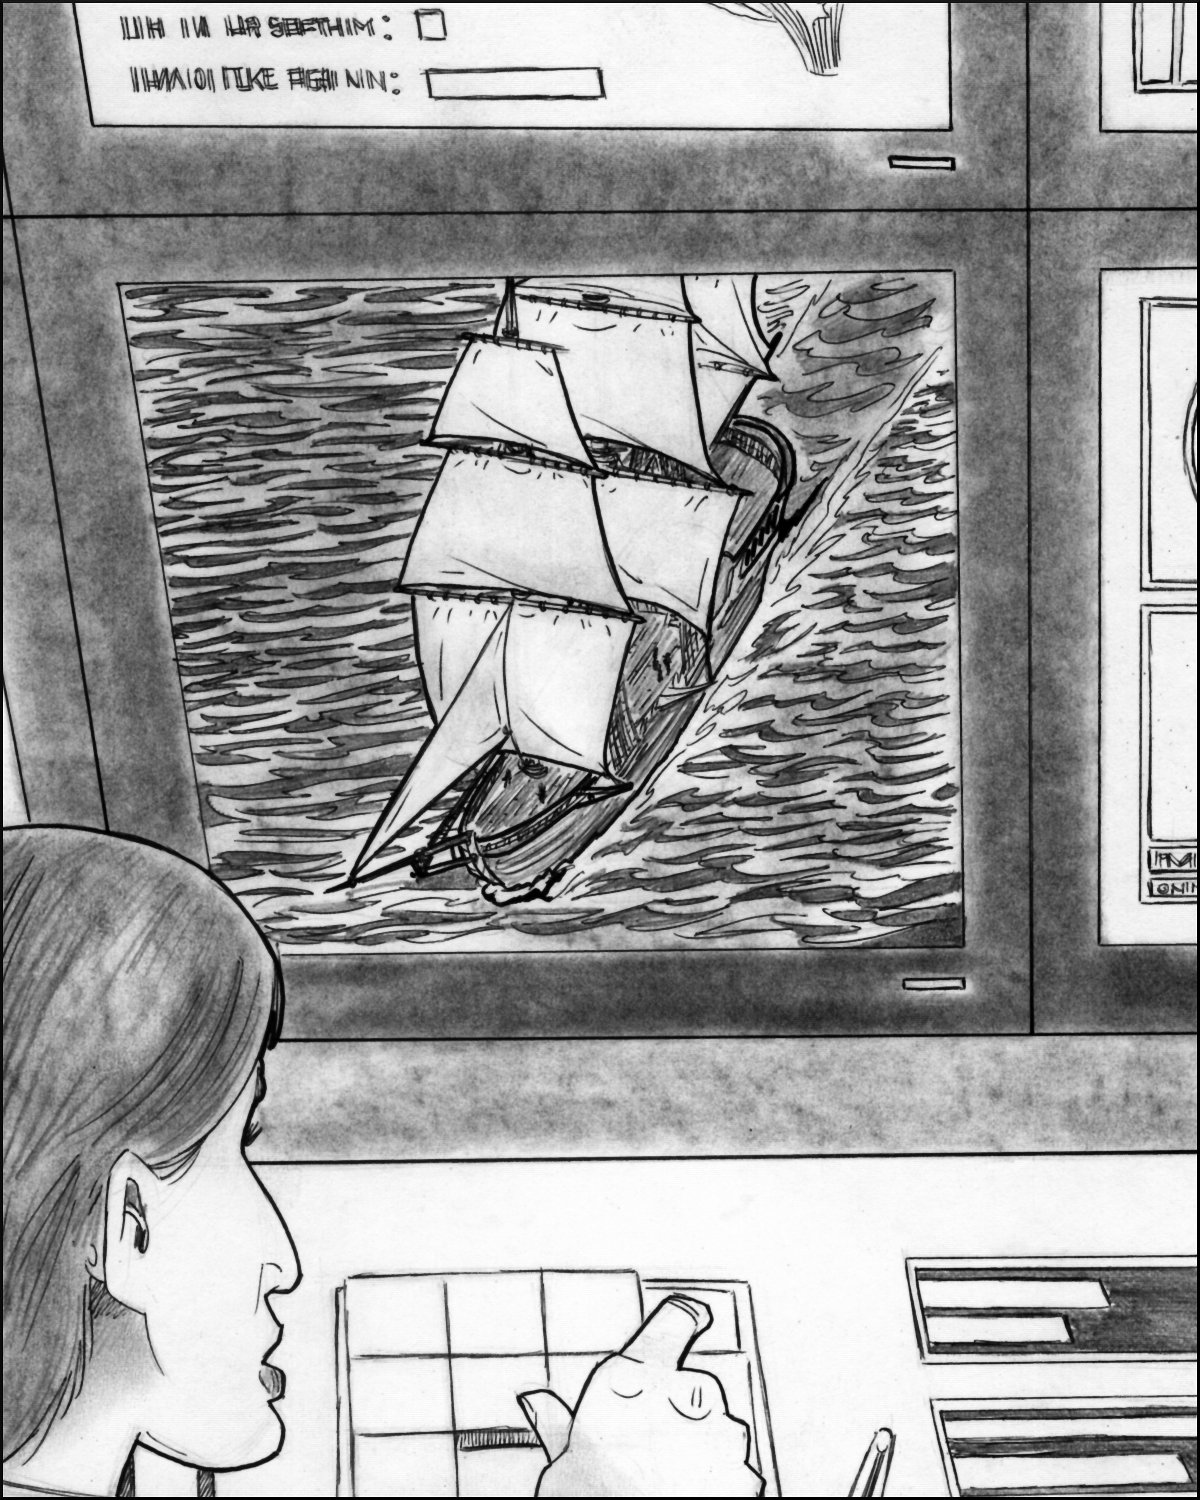 Willie tunes in a dream and sees a three-masted sailing ship.